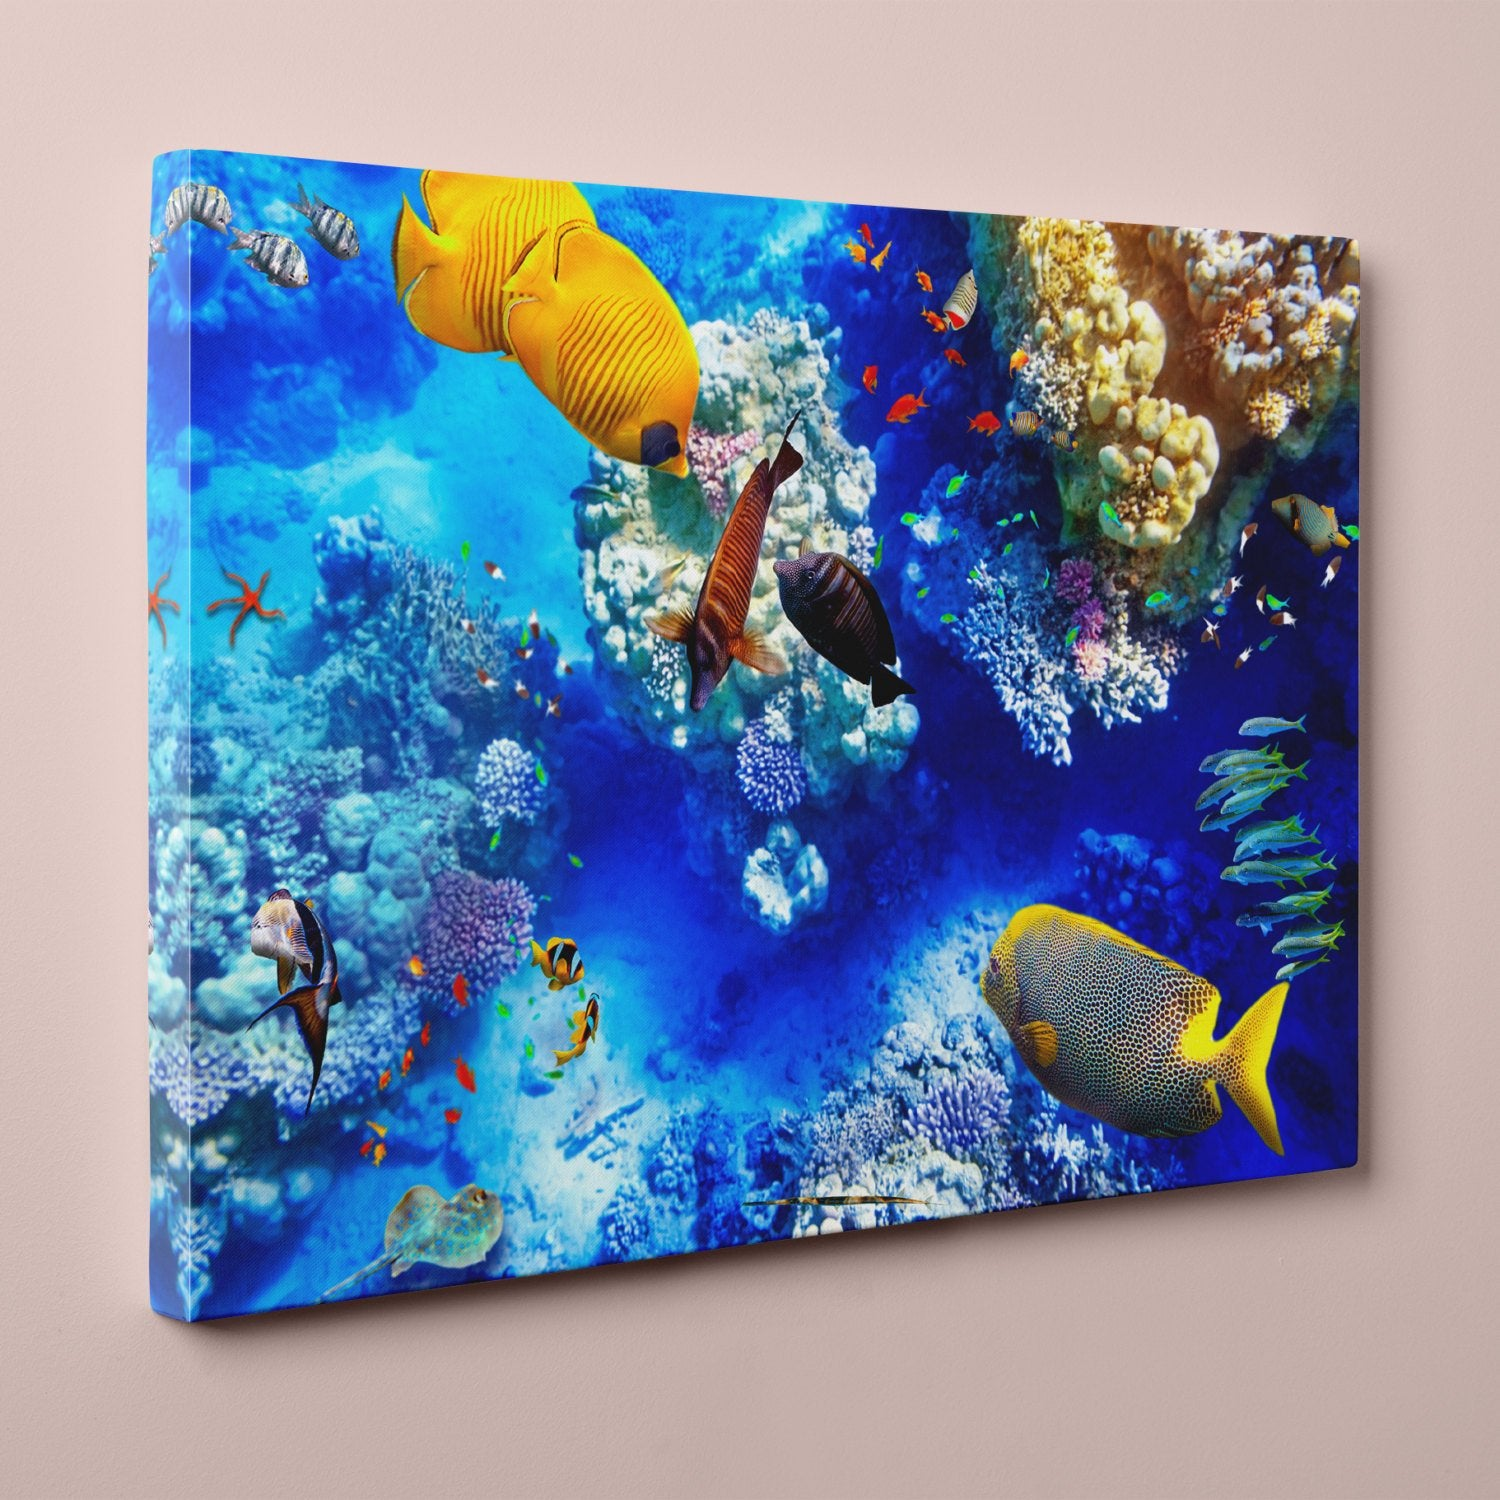 "Coral and Tropical Fish, Underwater Photo (16"" x 24"") - Canvas Wrap Print"